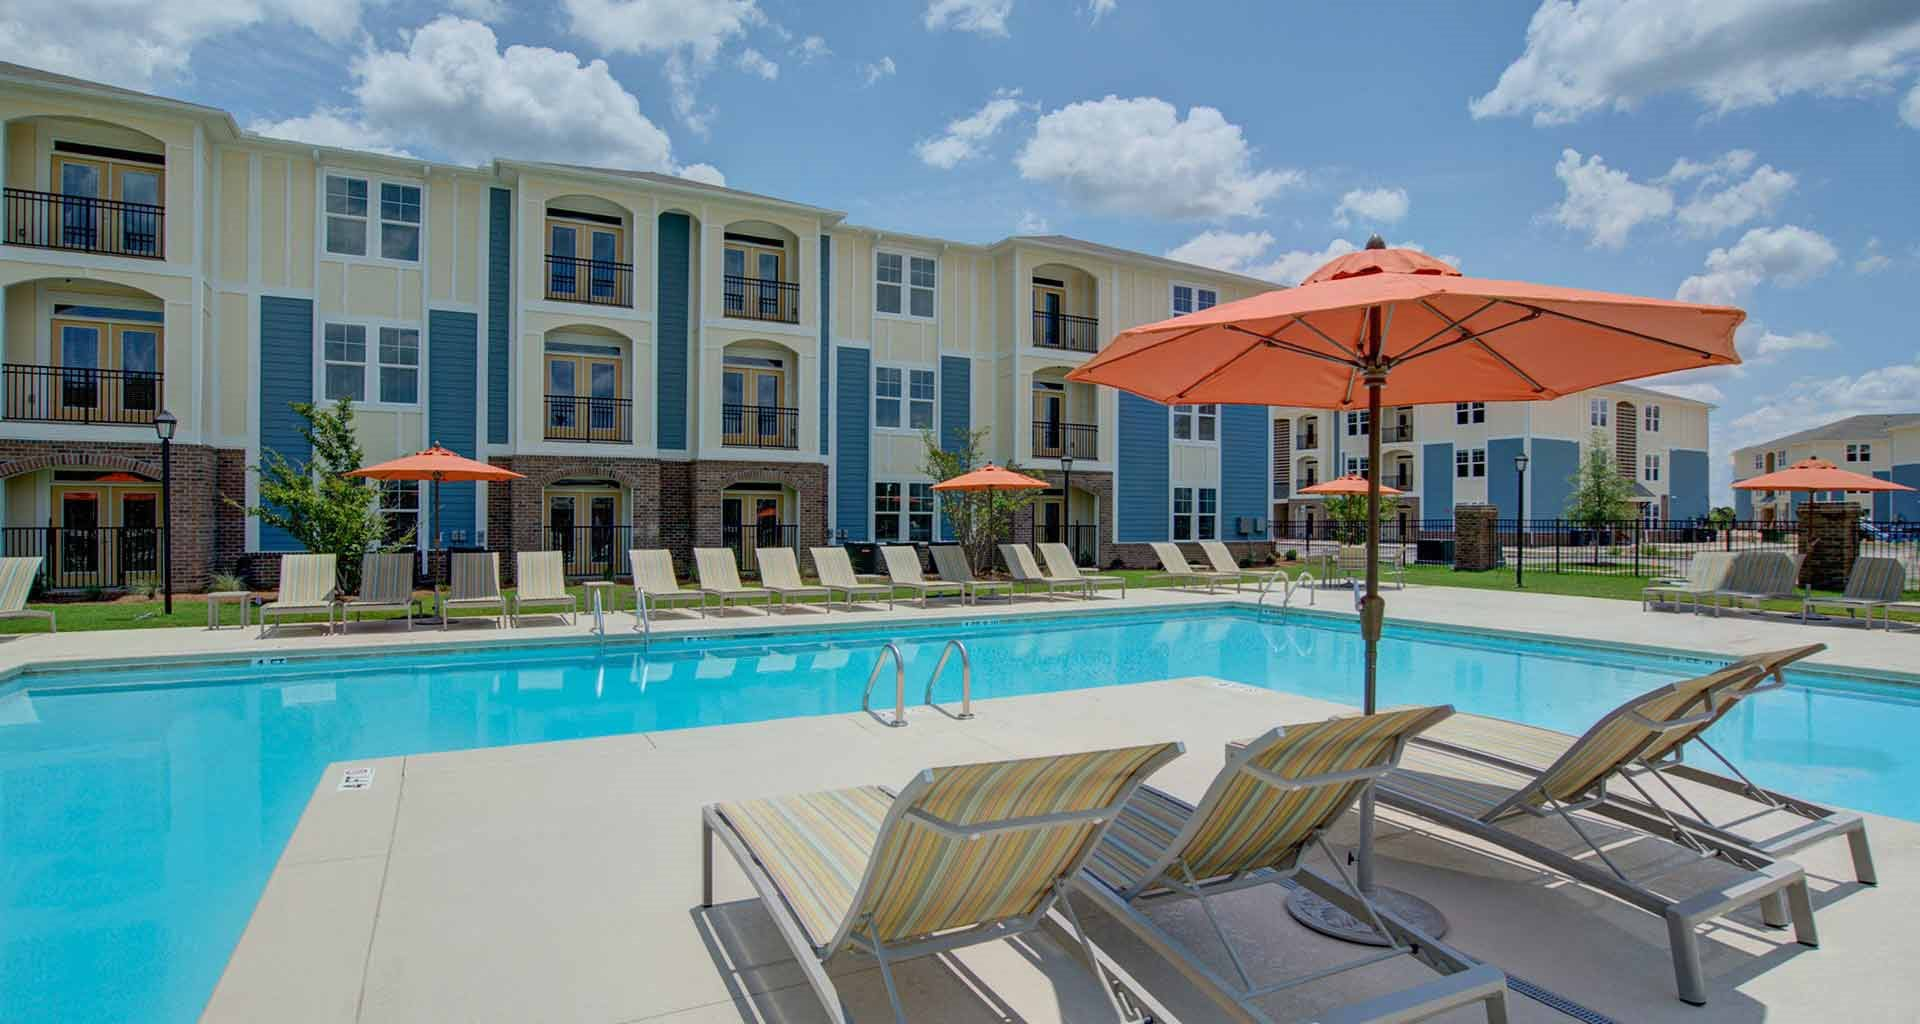 Pool Side Relaxing Area At Beckstone Apartments Summerville 29486